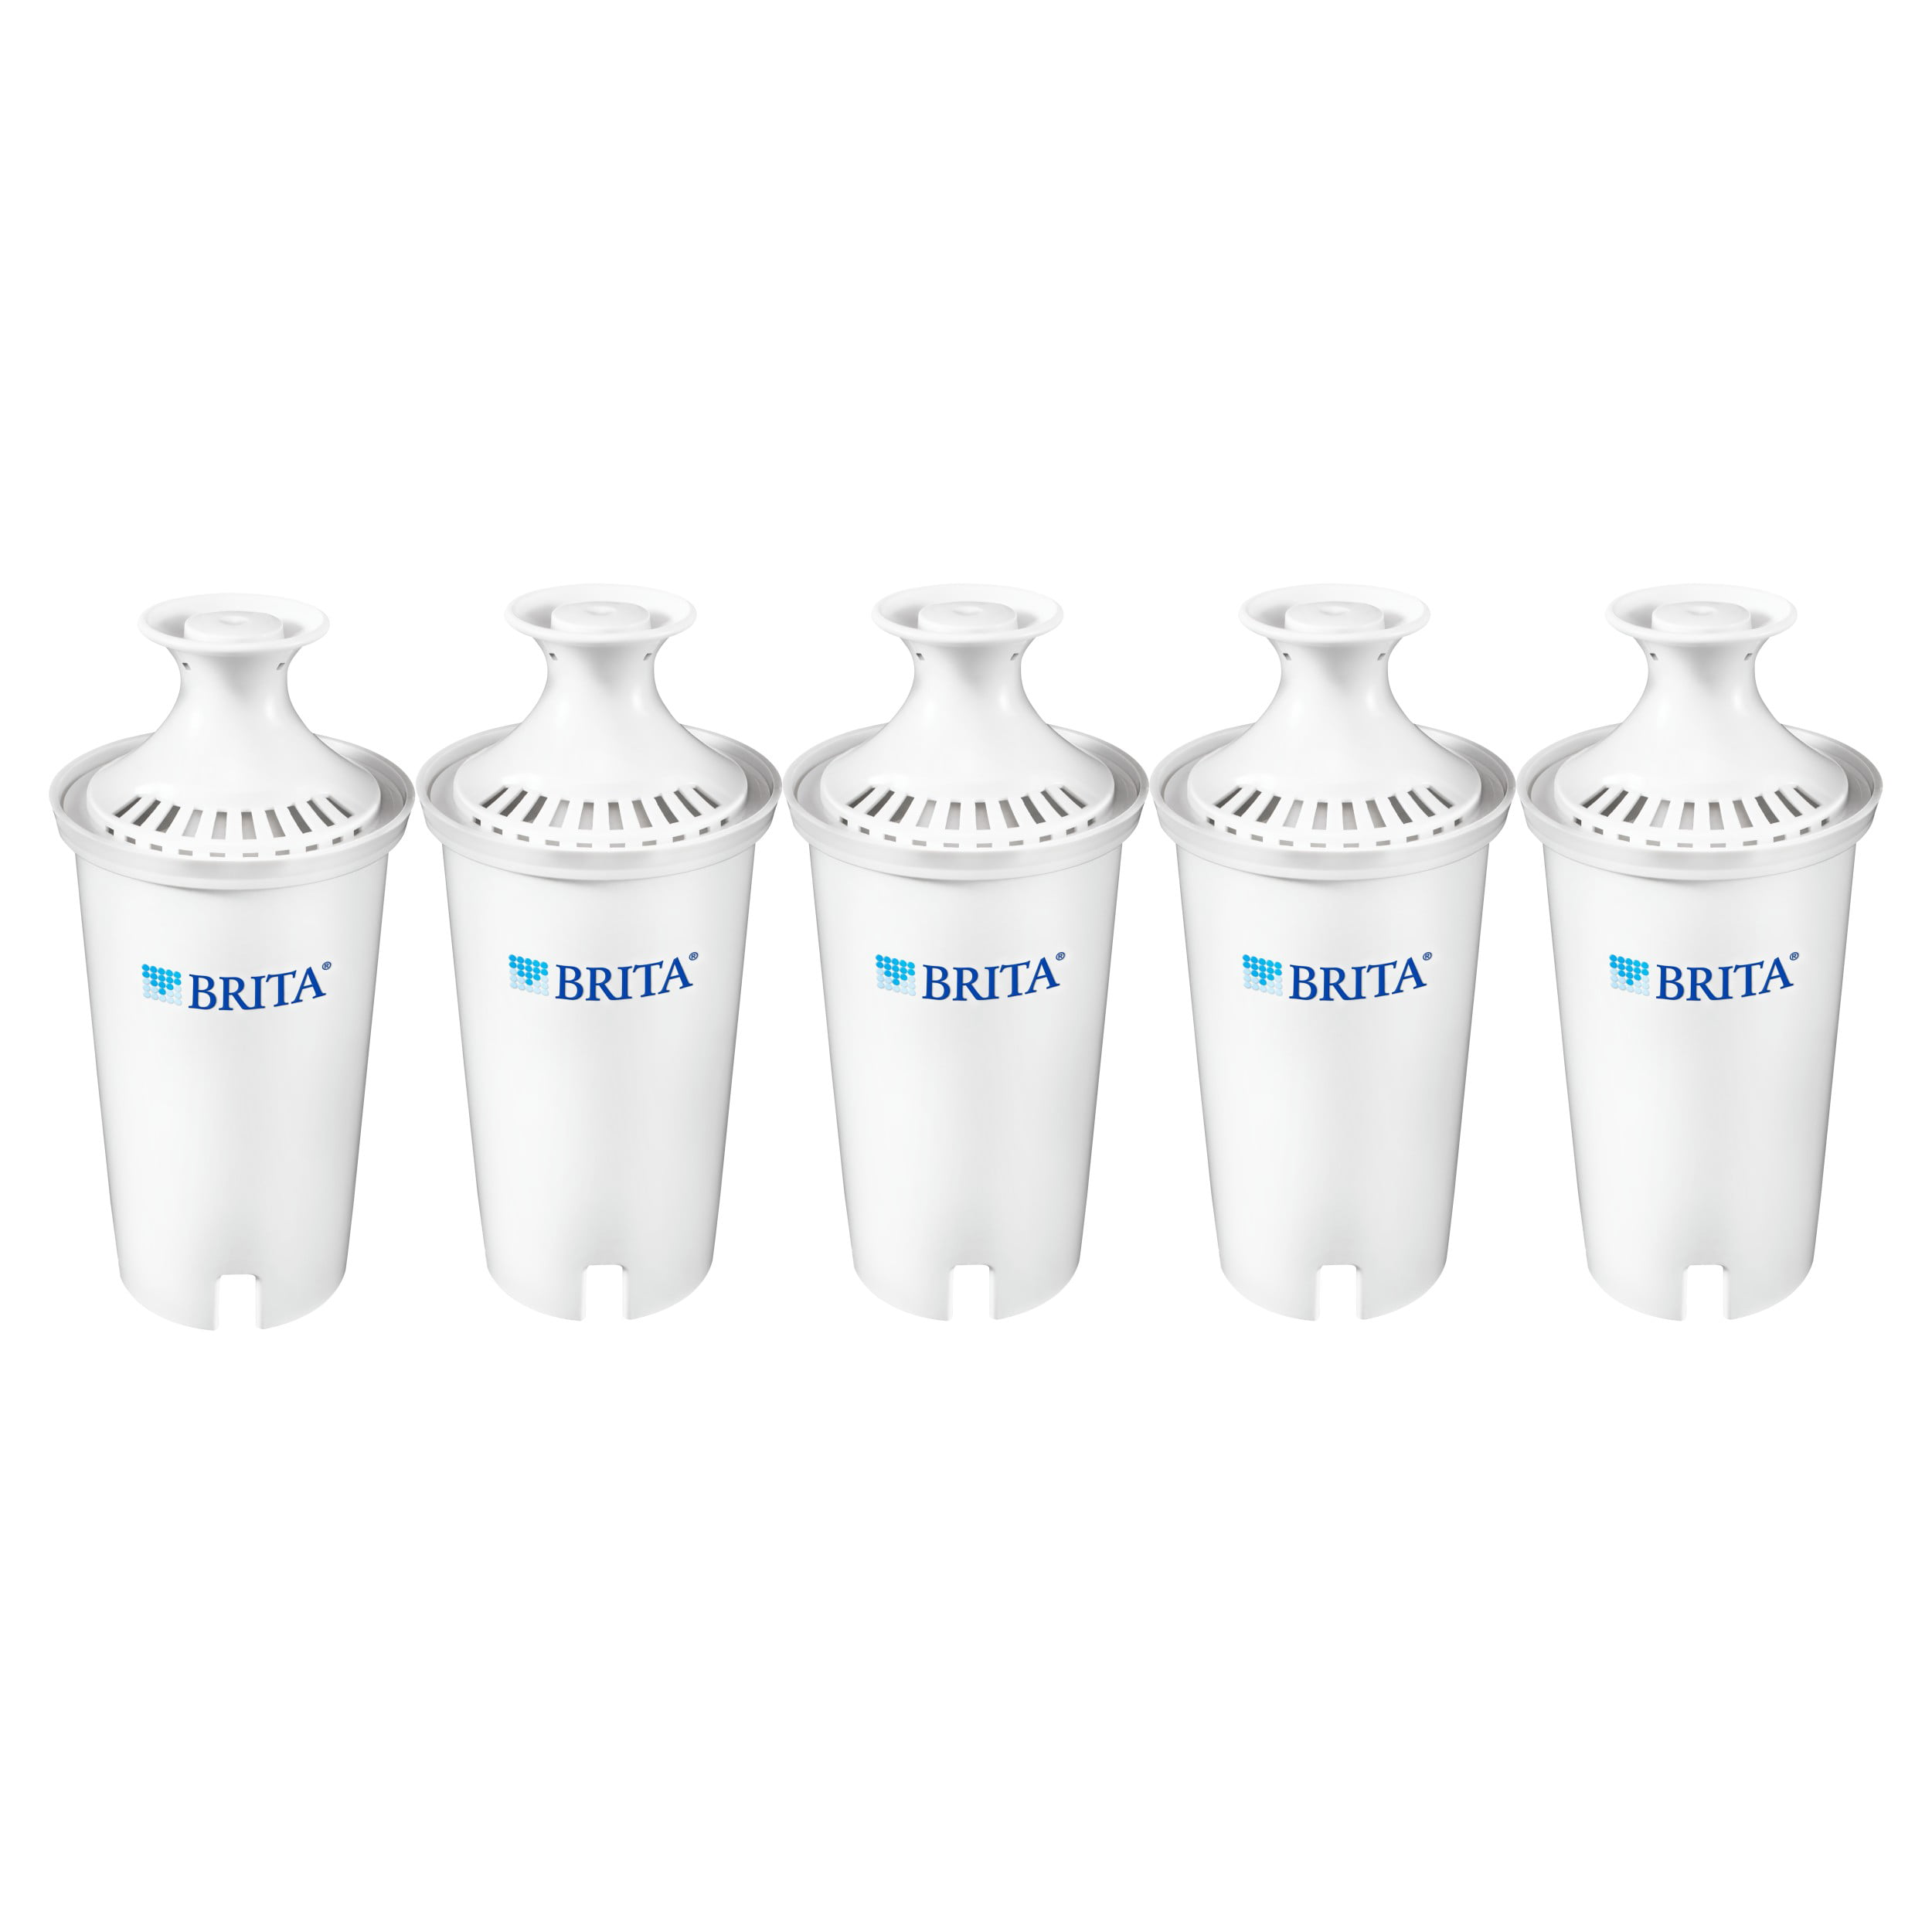 8 Count Brita Standard Replacement Pitcher Water Filters 4 Count x 2